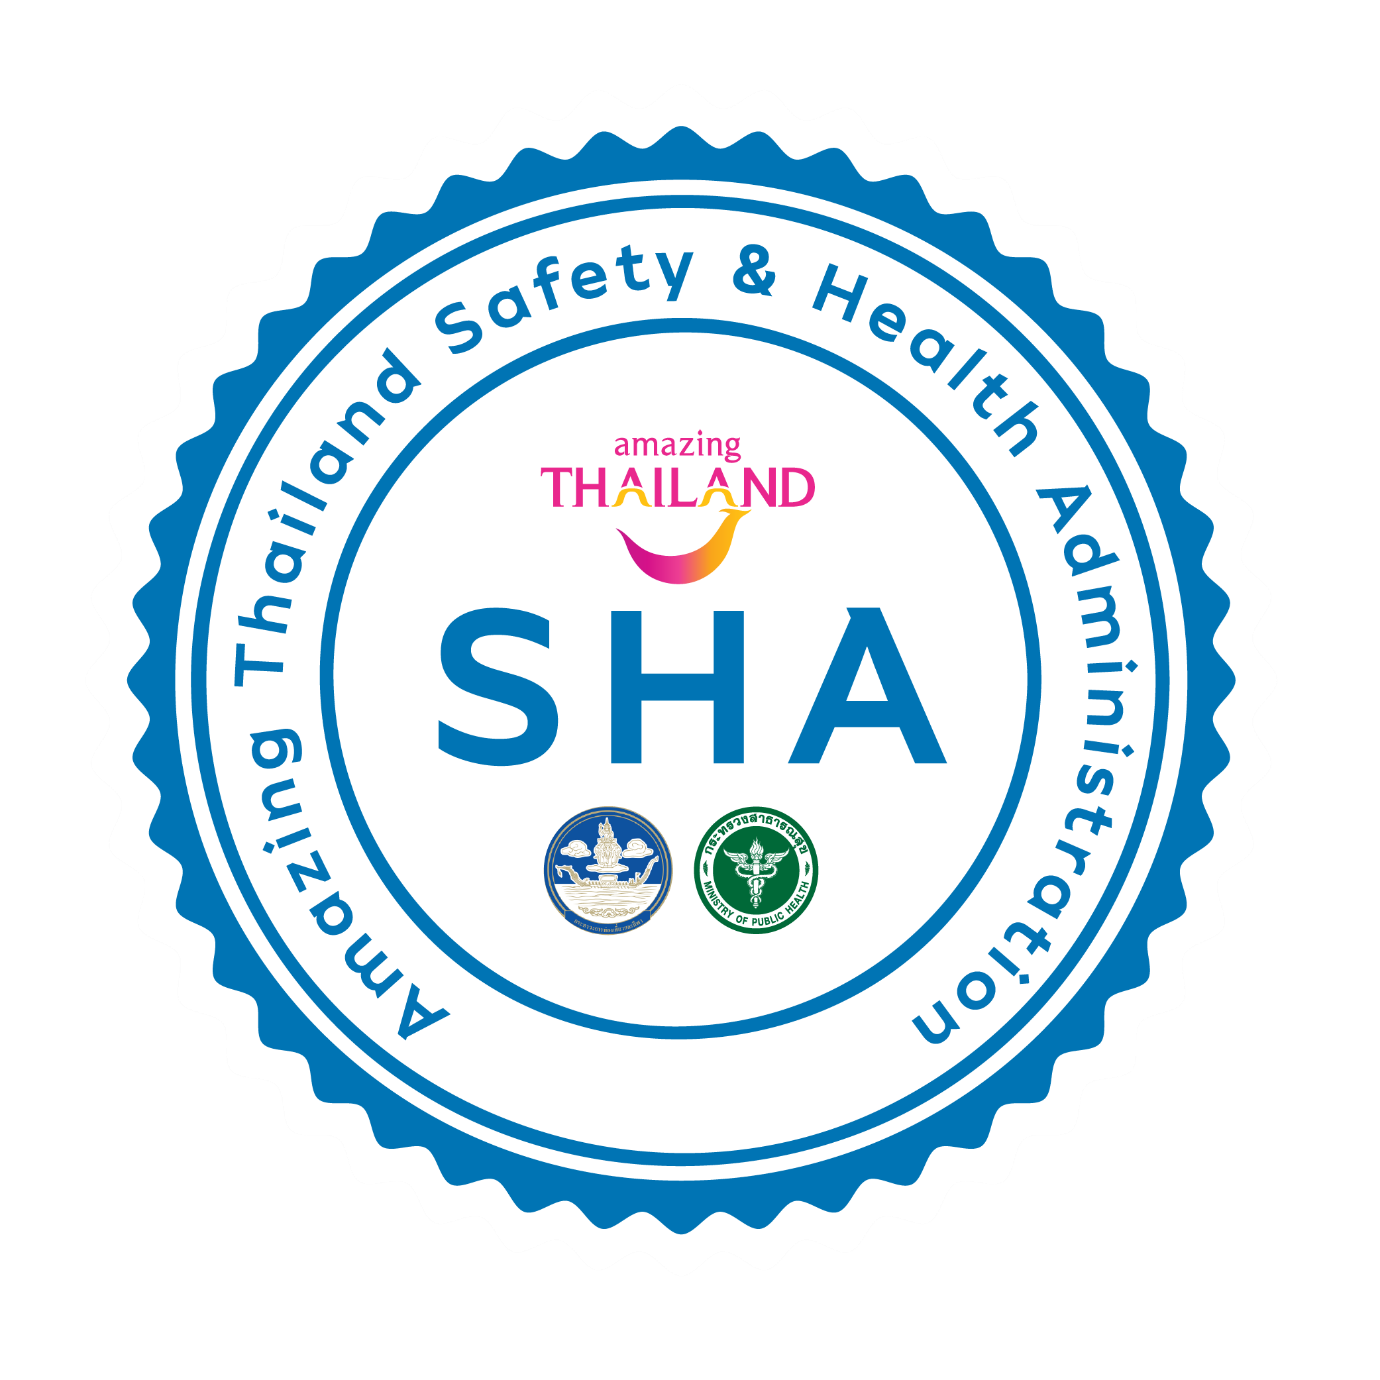 Amazing Thailand Safety Health & Administration certificate logo